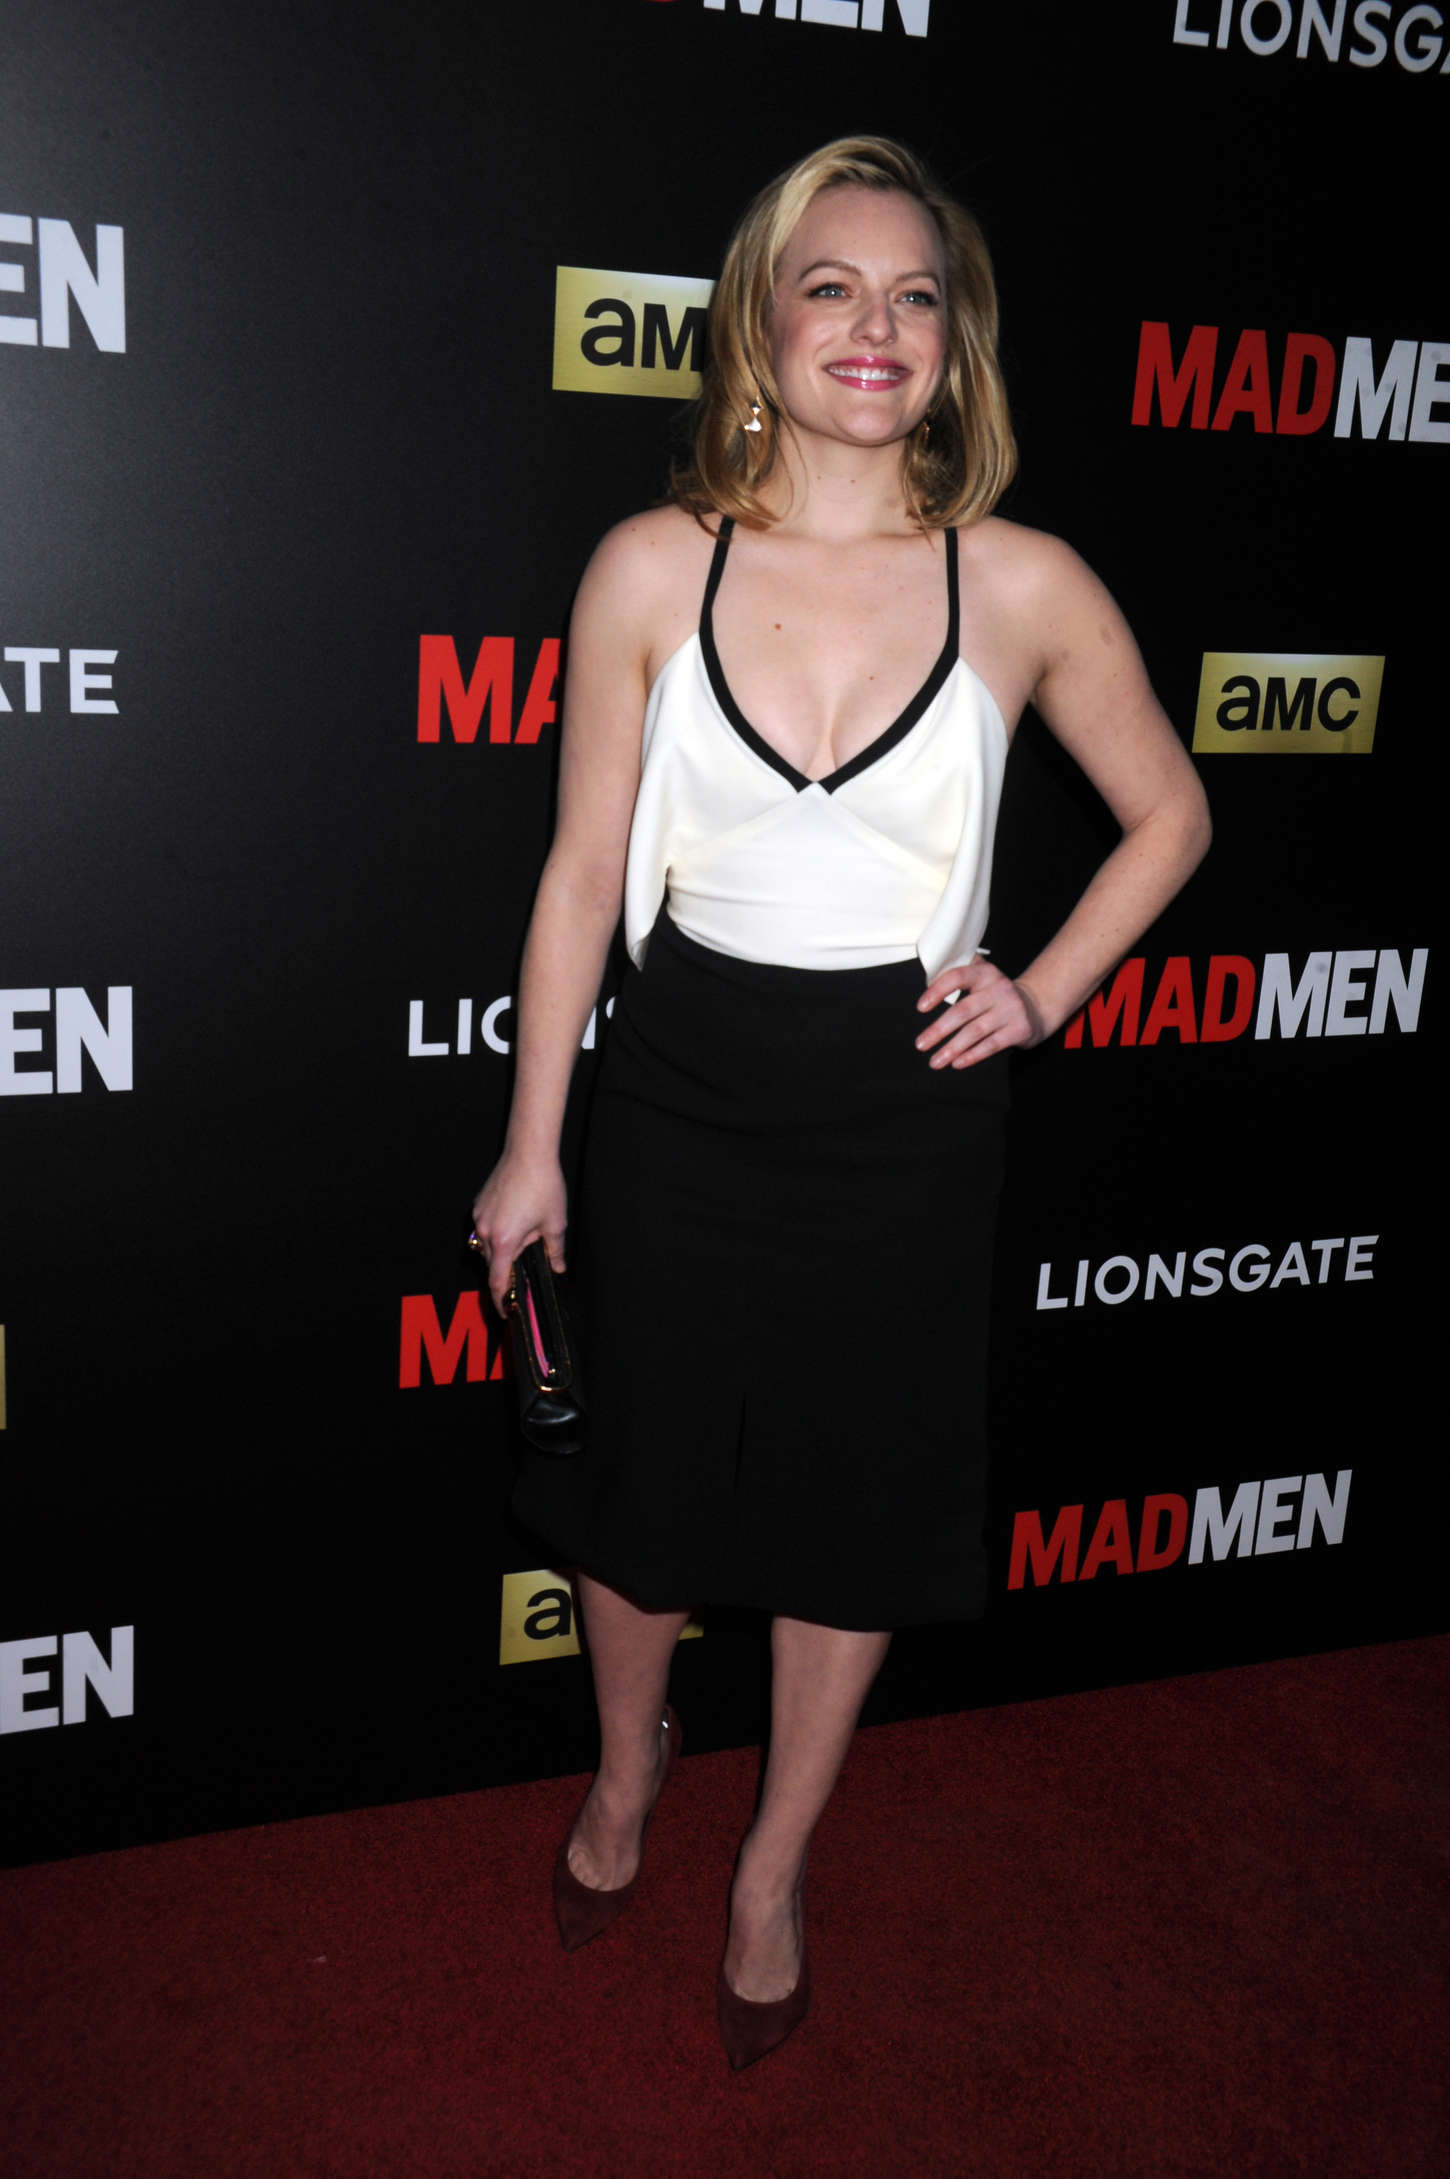 Elisabeth Moss AMC Mad Men Black Red Ball in Los Angeles